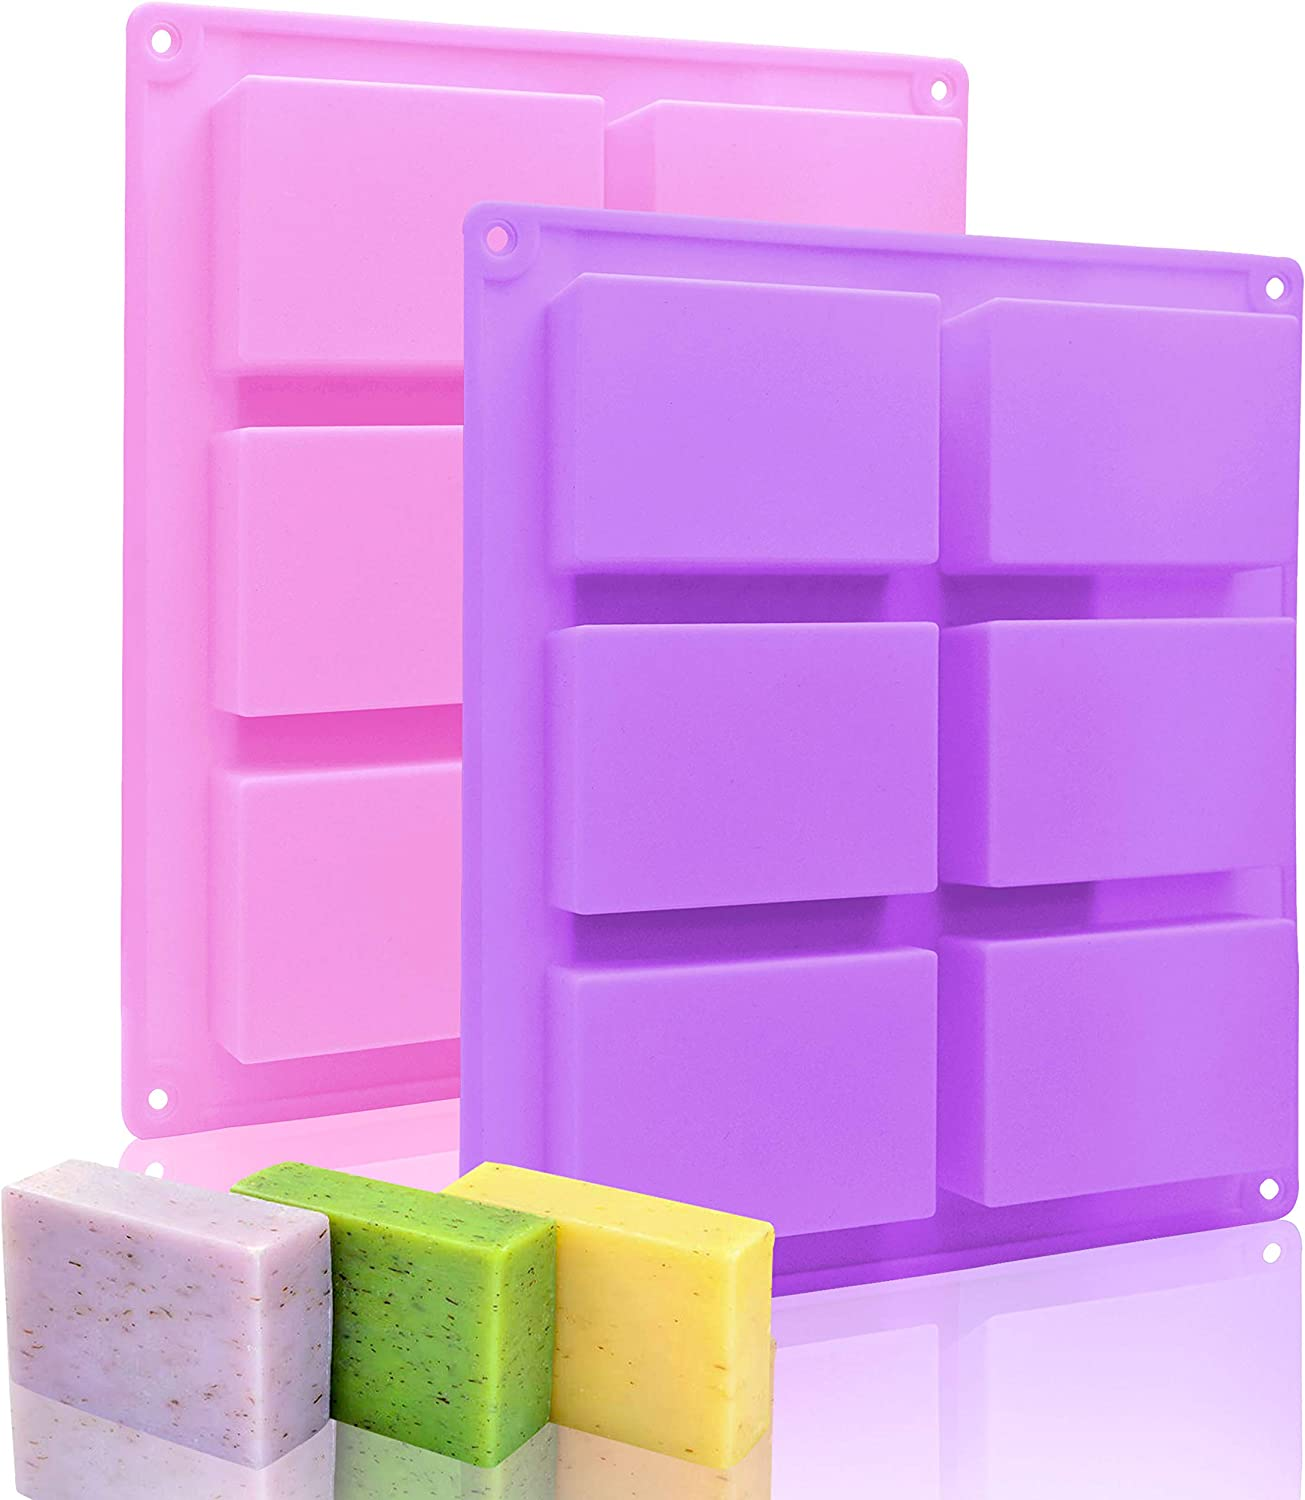 Silicone Soap Molds Set of 2, 6 Cavities Rectangle Silicone Soap Molds for Homemade Craft Soap Mold, Cake Mold, Chocolate Mold & Ice Cube Tray(Purple & Pink)